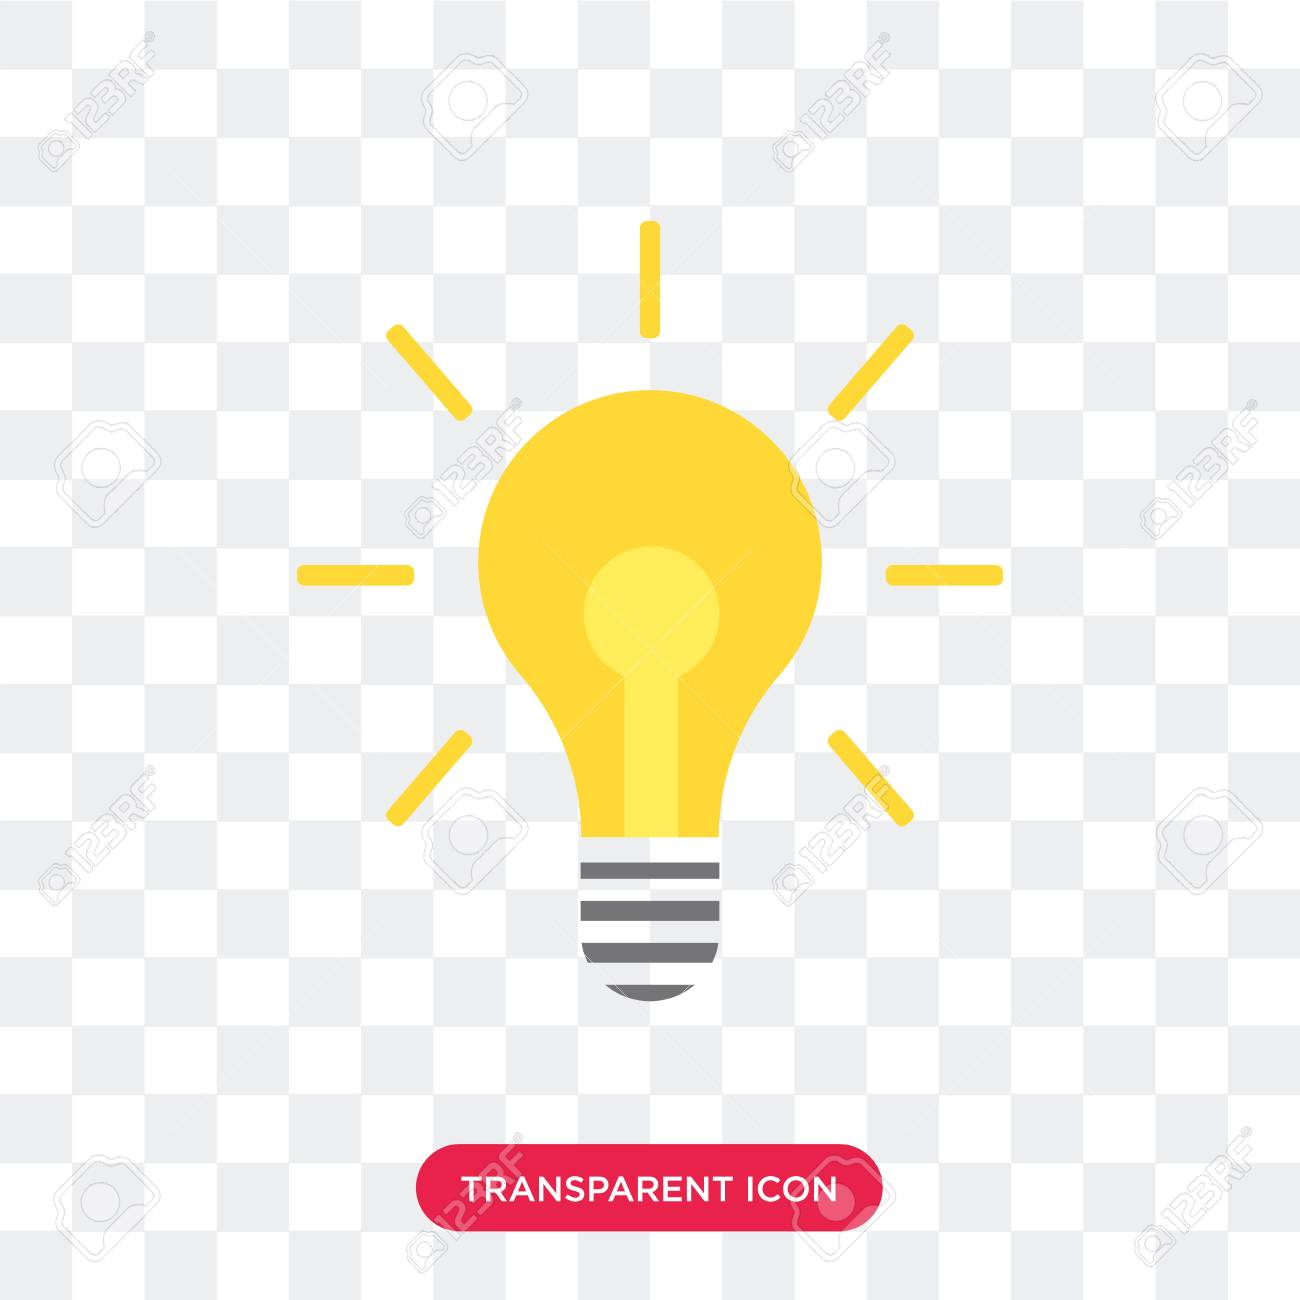 Light bulb vector icon isolated on transparent background, Light bulb logo concept - 114400813